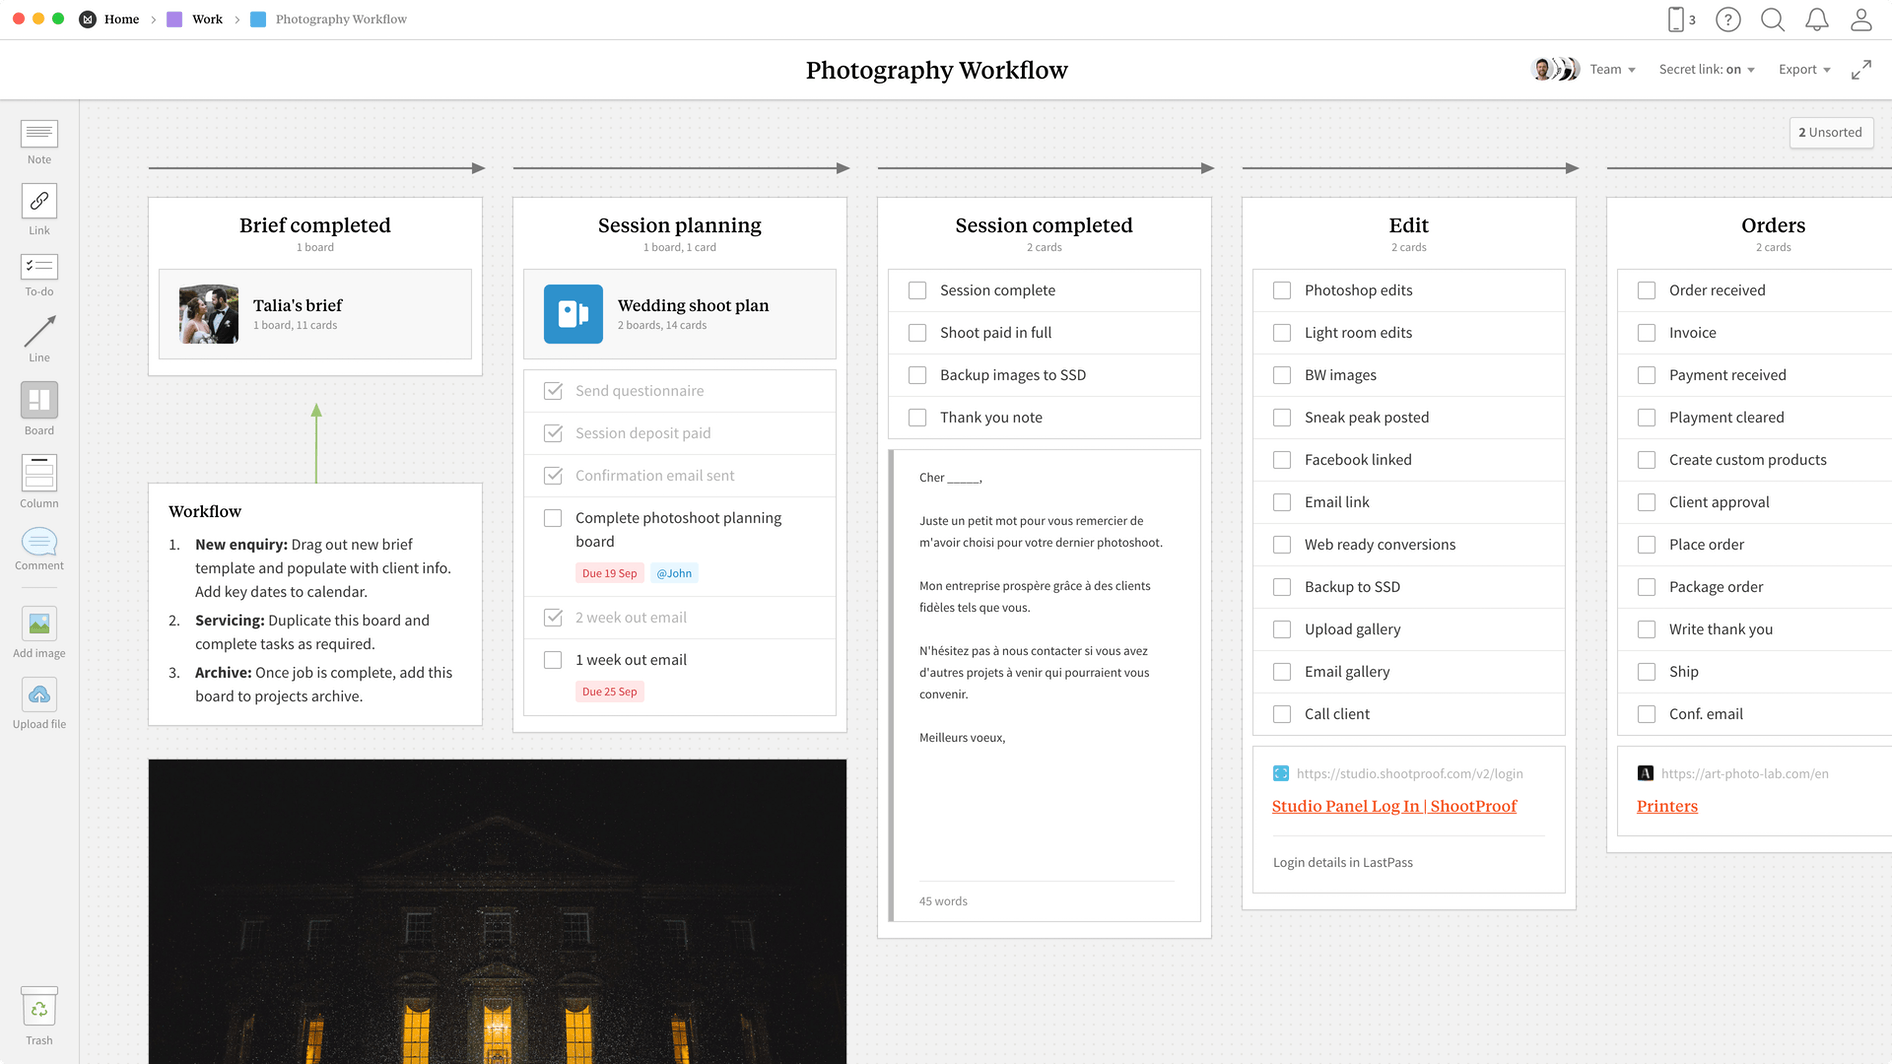 Photography Workflow Template, within the Milanote app